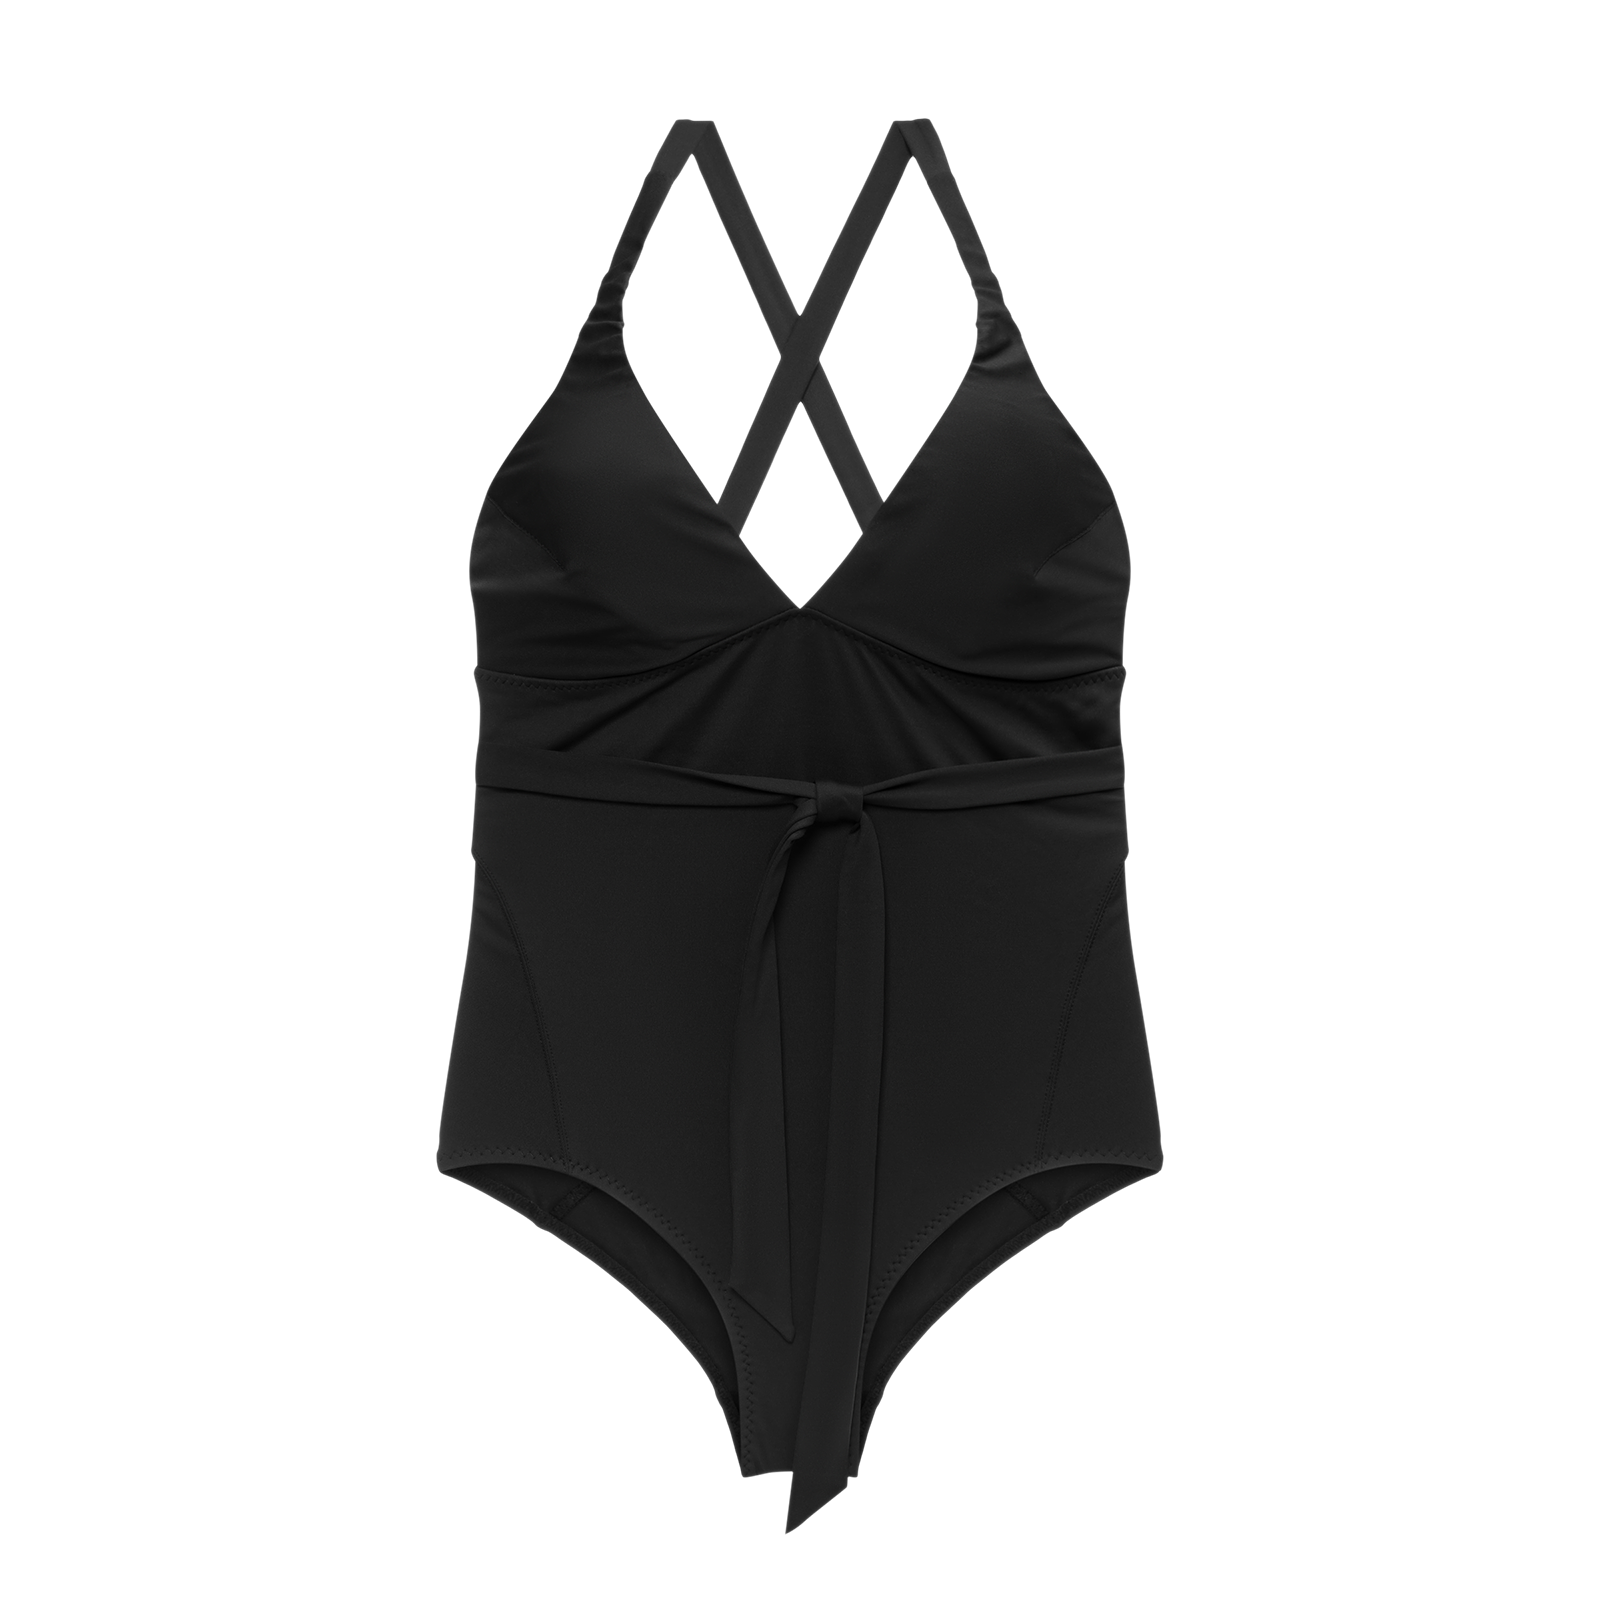 Flat lay swimwear product image